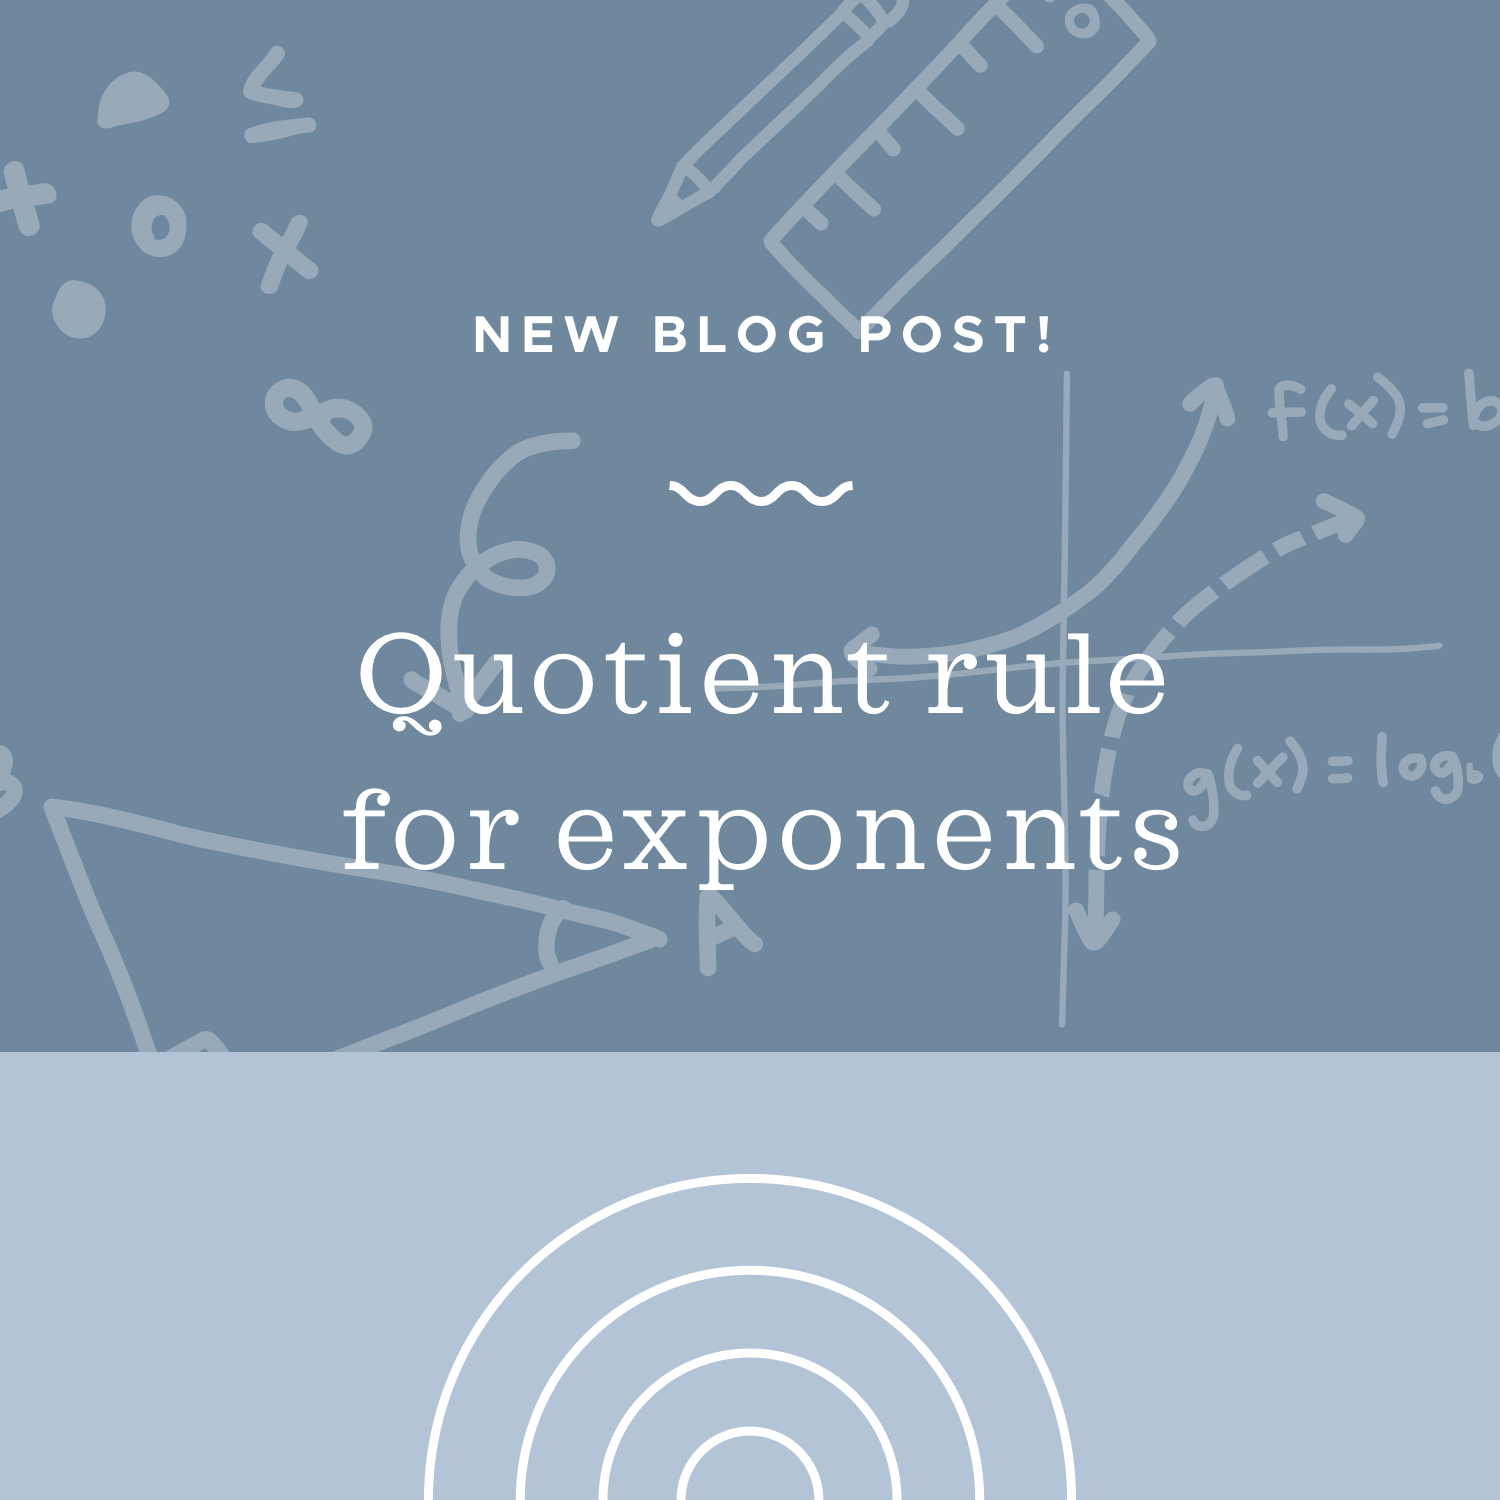 Quotient rule for exponents blog post.jpeg